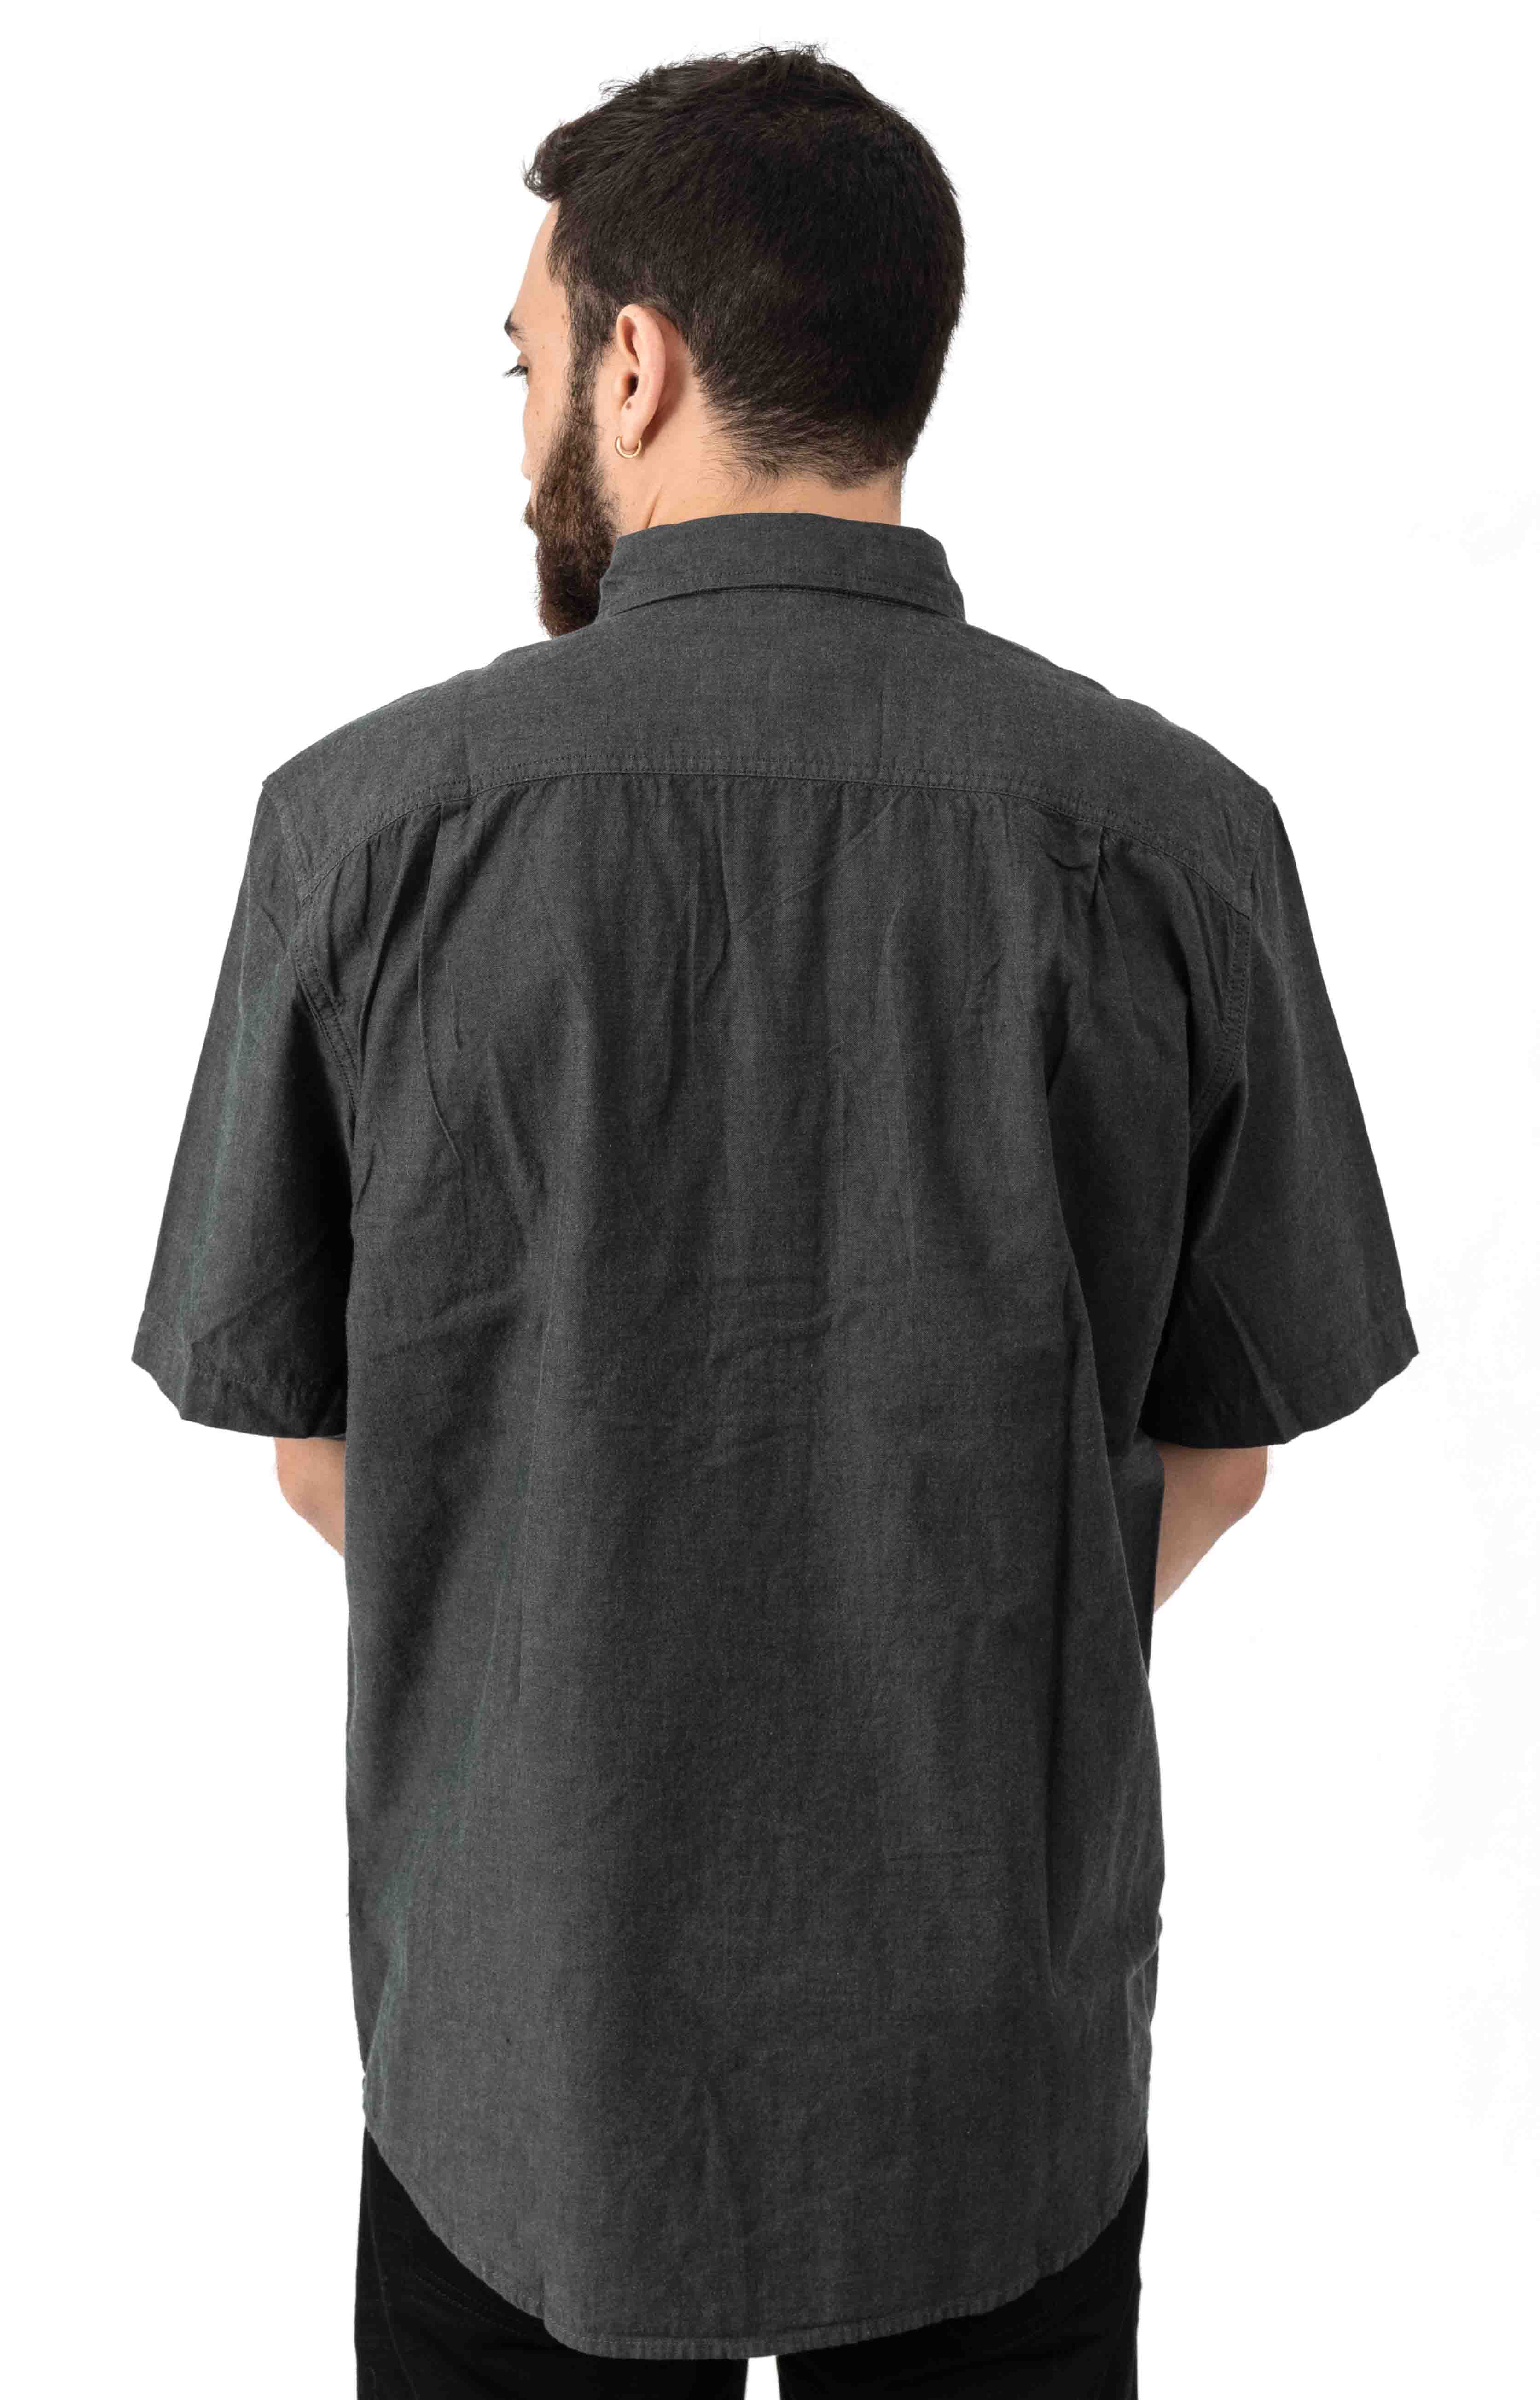 (104369) Original Fit MW S/S Button-Up Shirt - Black Chambray  3